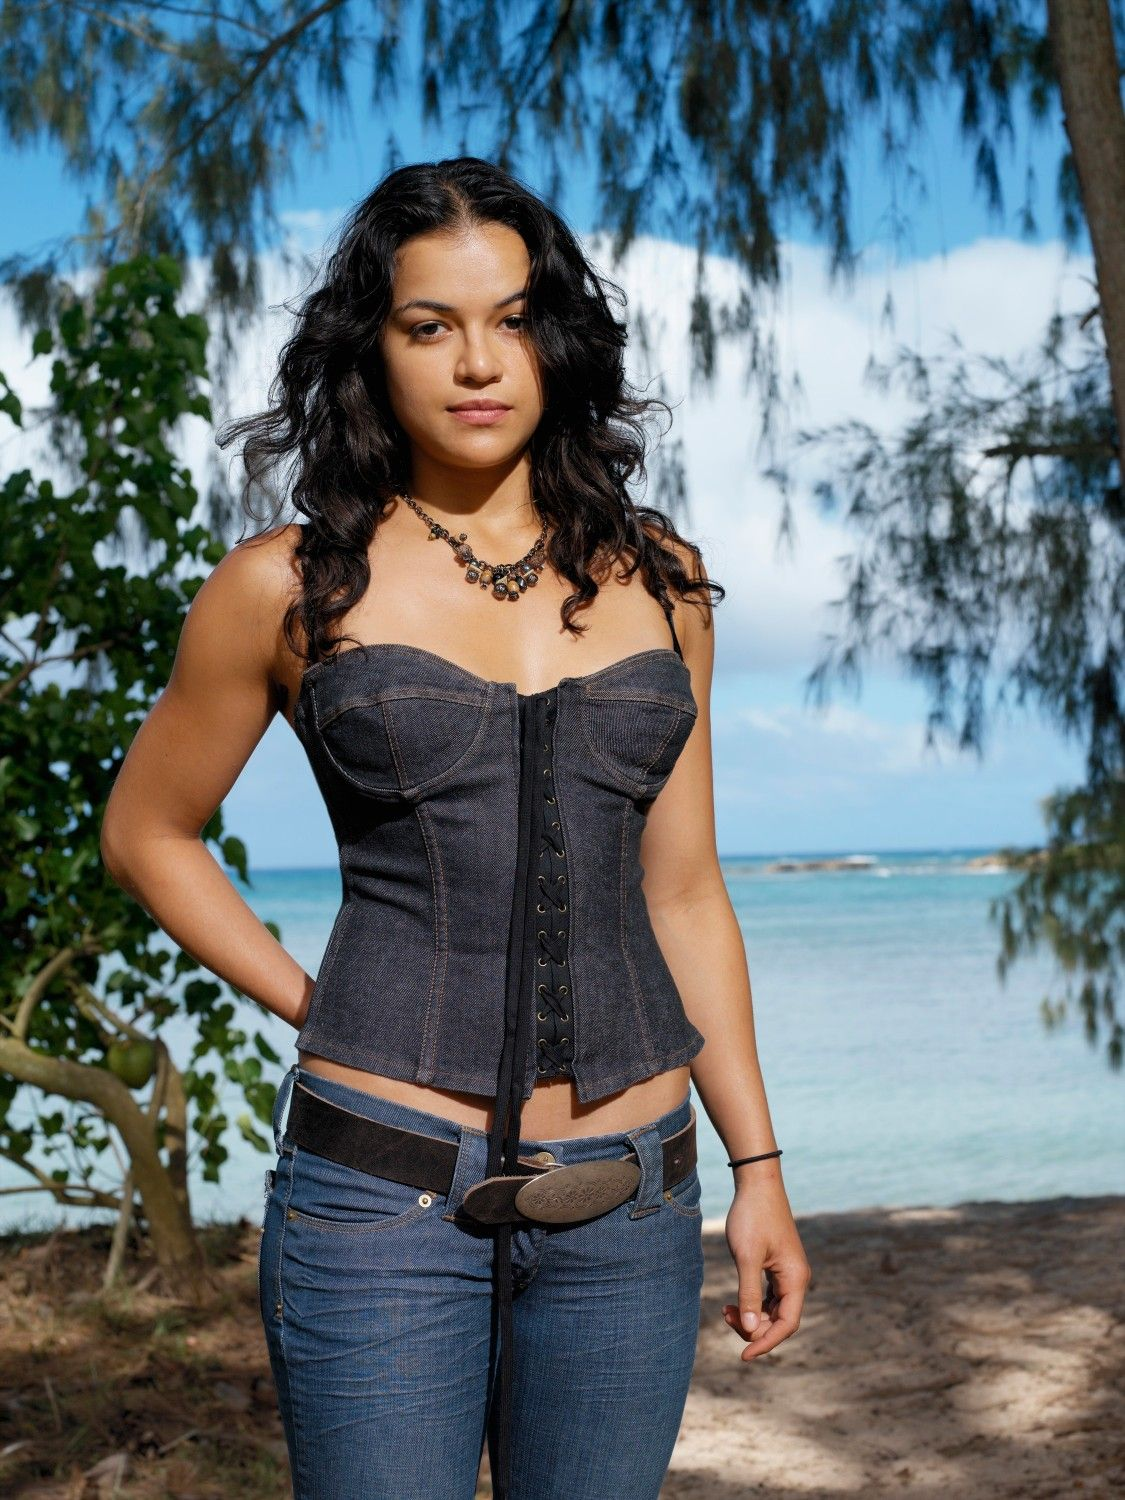 Tits Michelle Rodriguez  nude (94 photos), 2019, cleavage